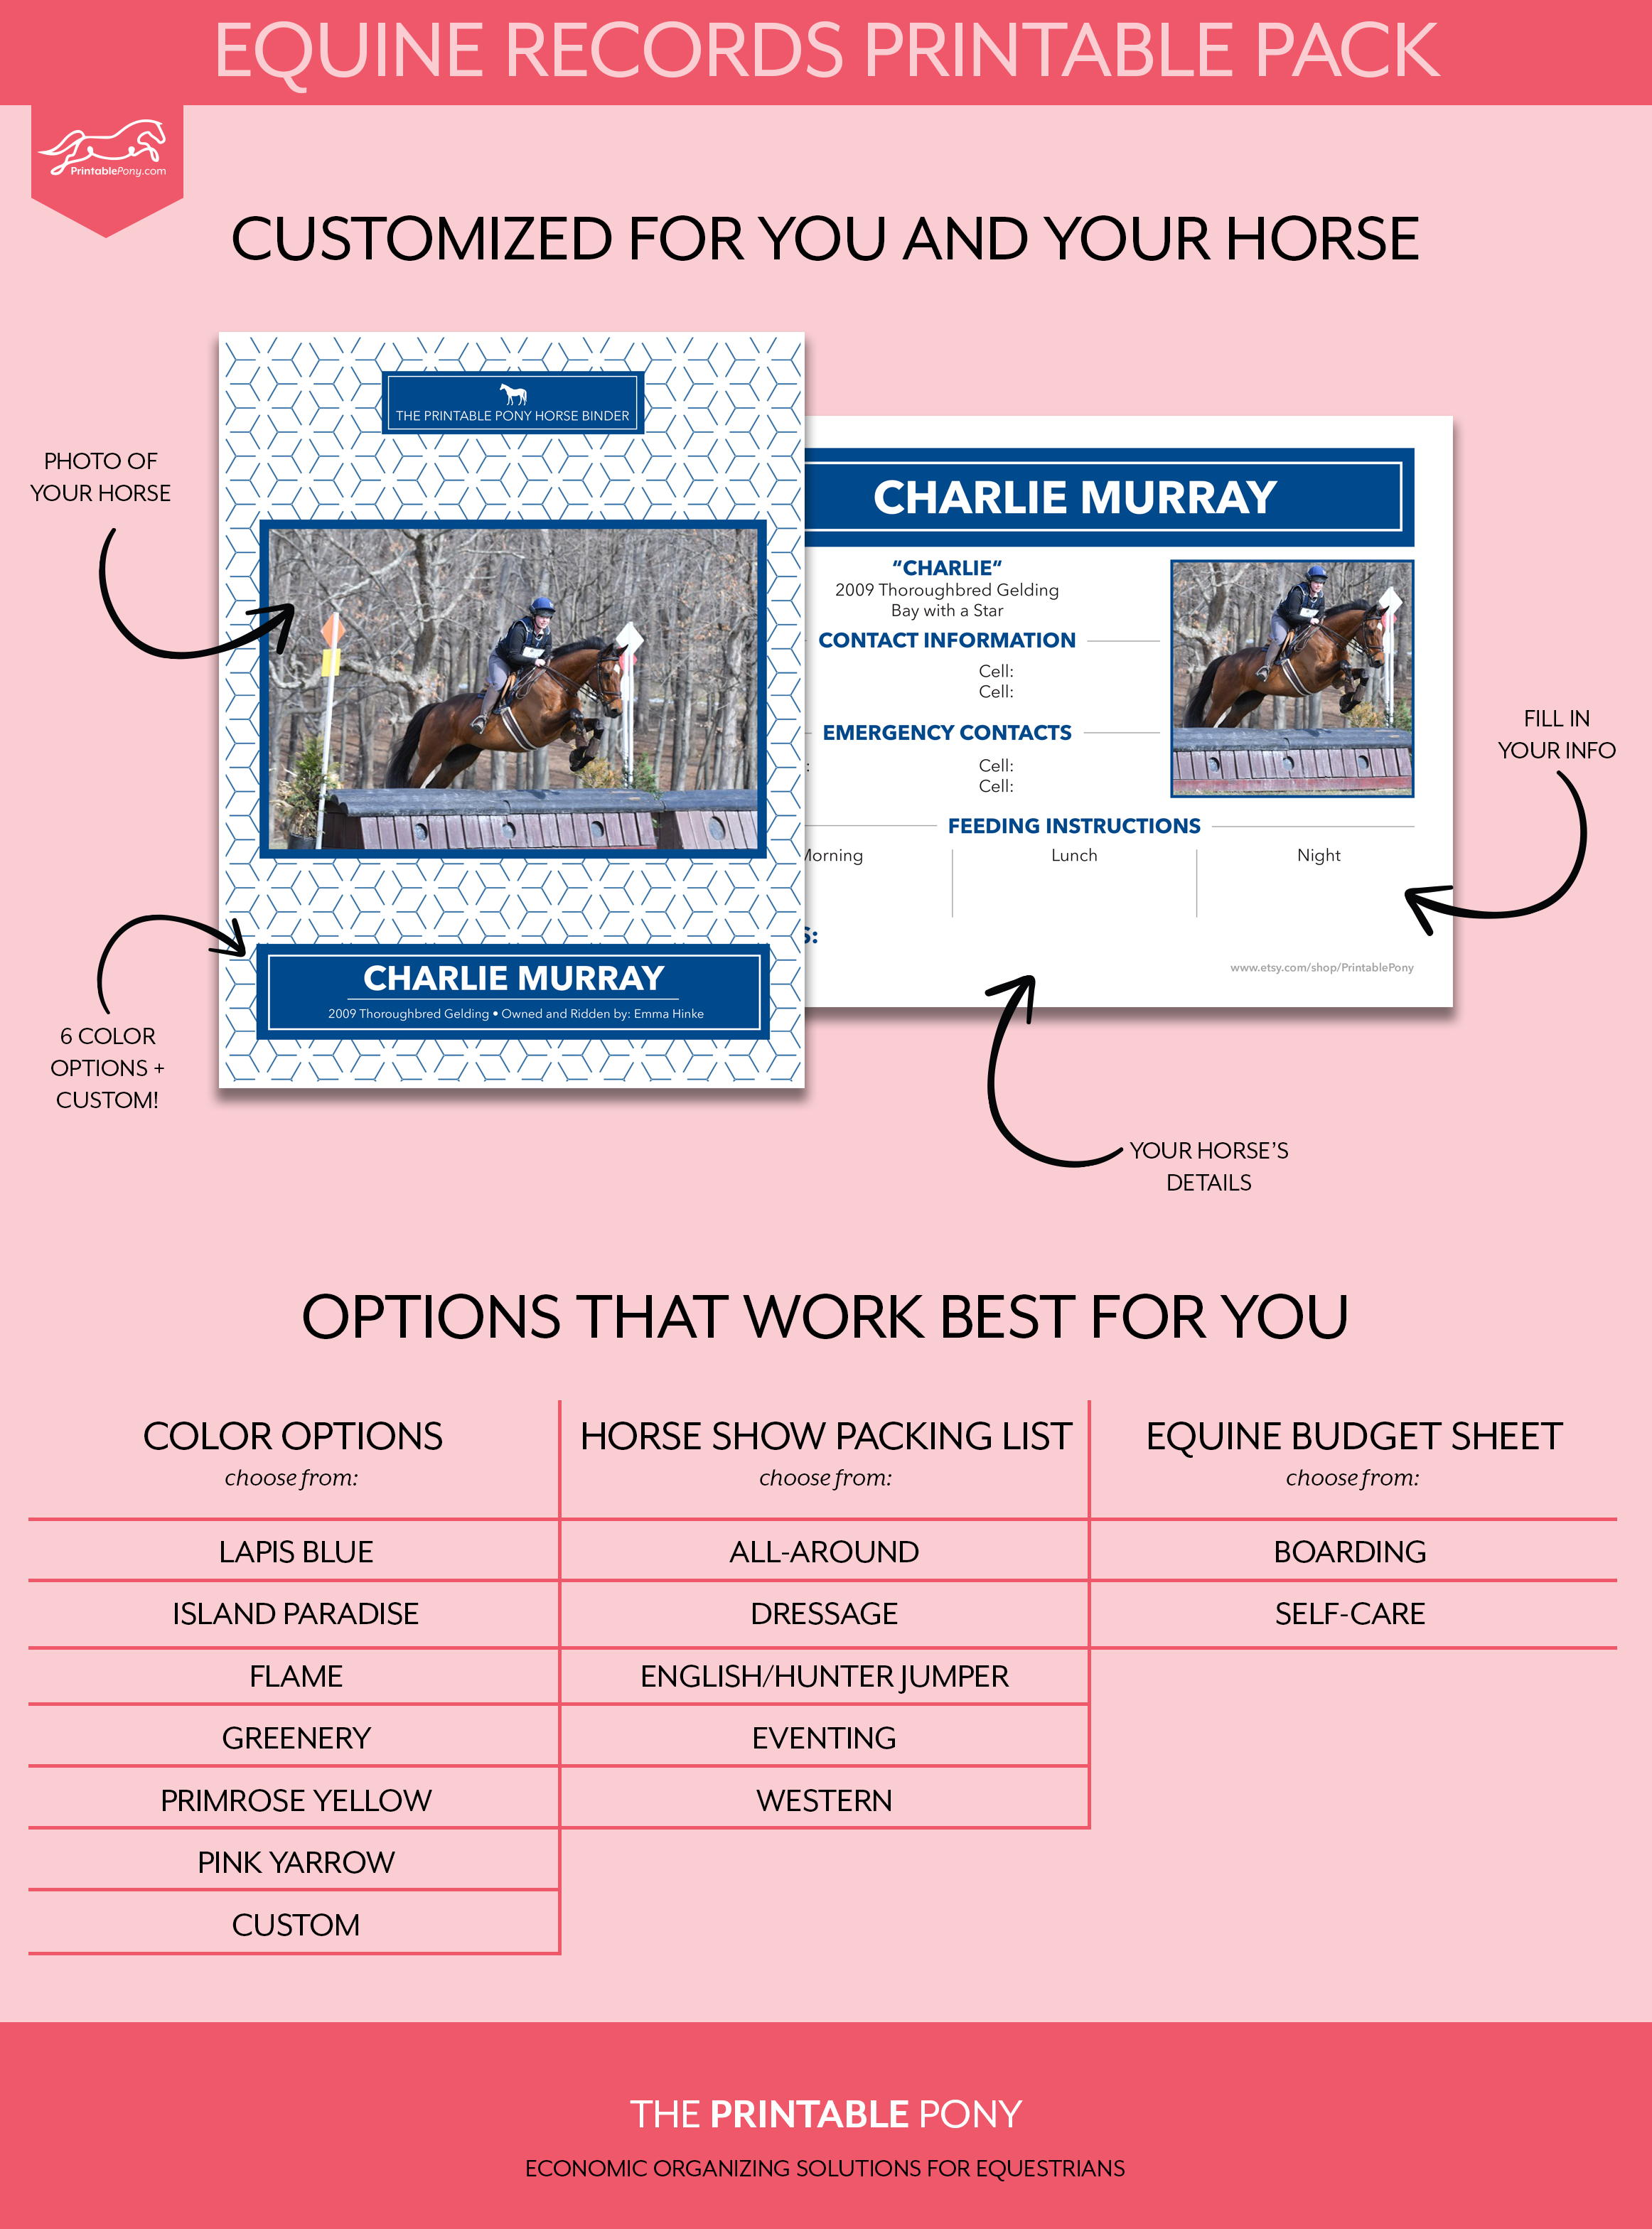 Equine Records Printable Pack